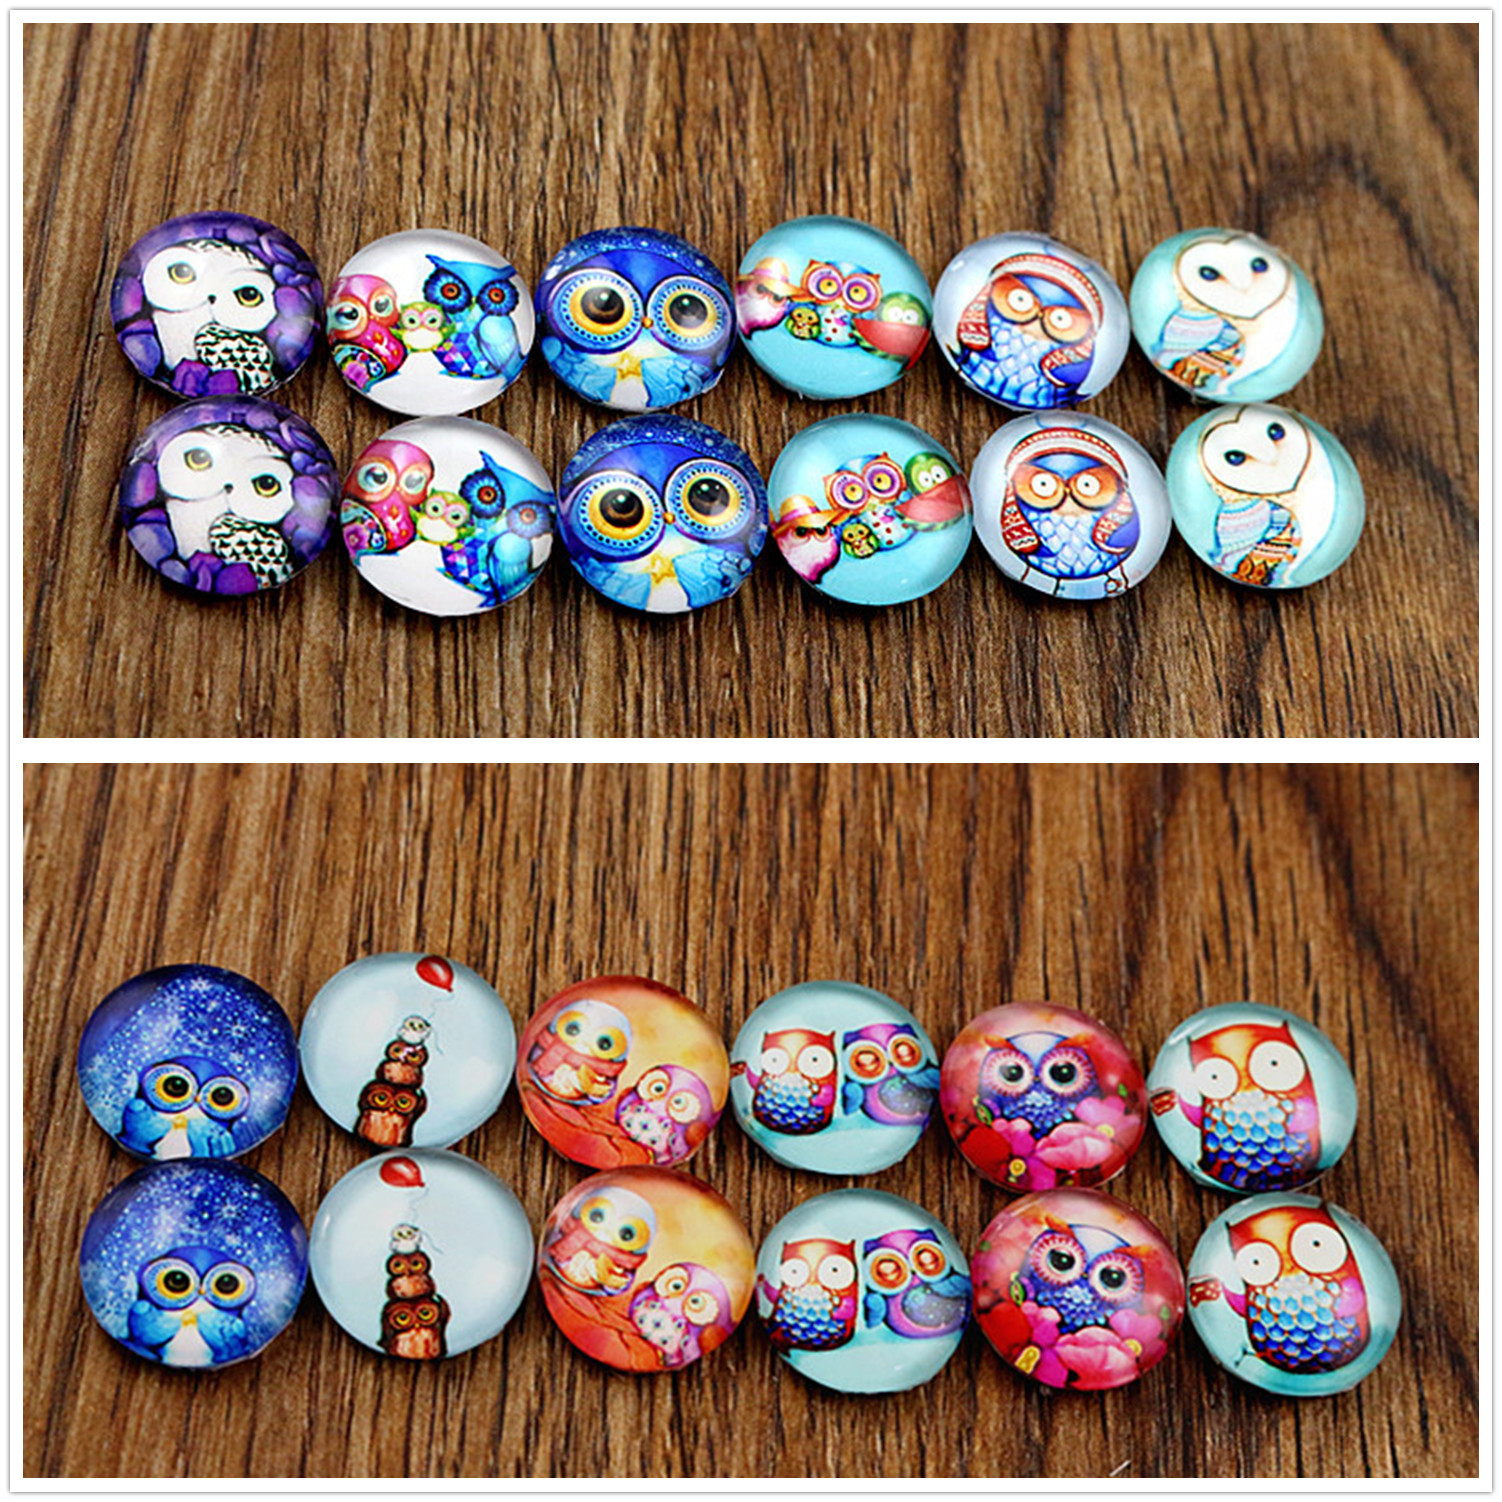 12pcs/lot (One Set) Two Style 12mm Owl Handmade Glass Cabochons Pattern Domed Jewelry Accessories Supplies